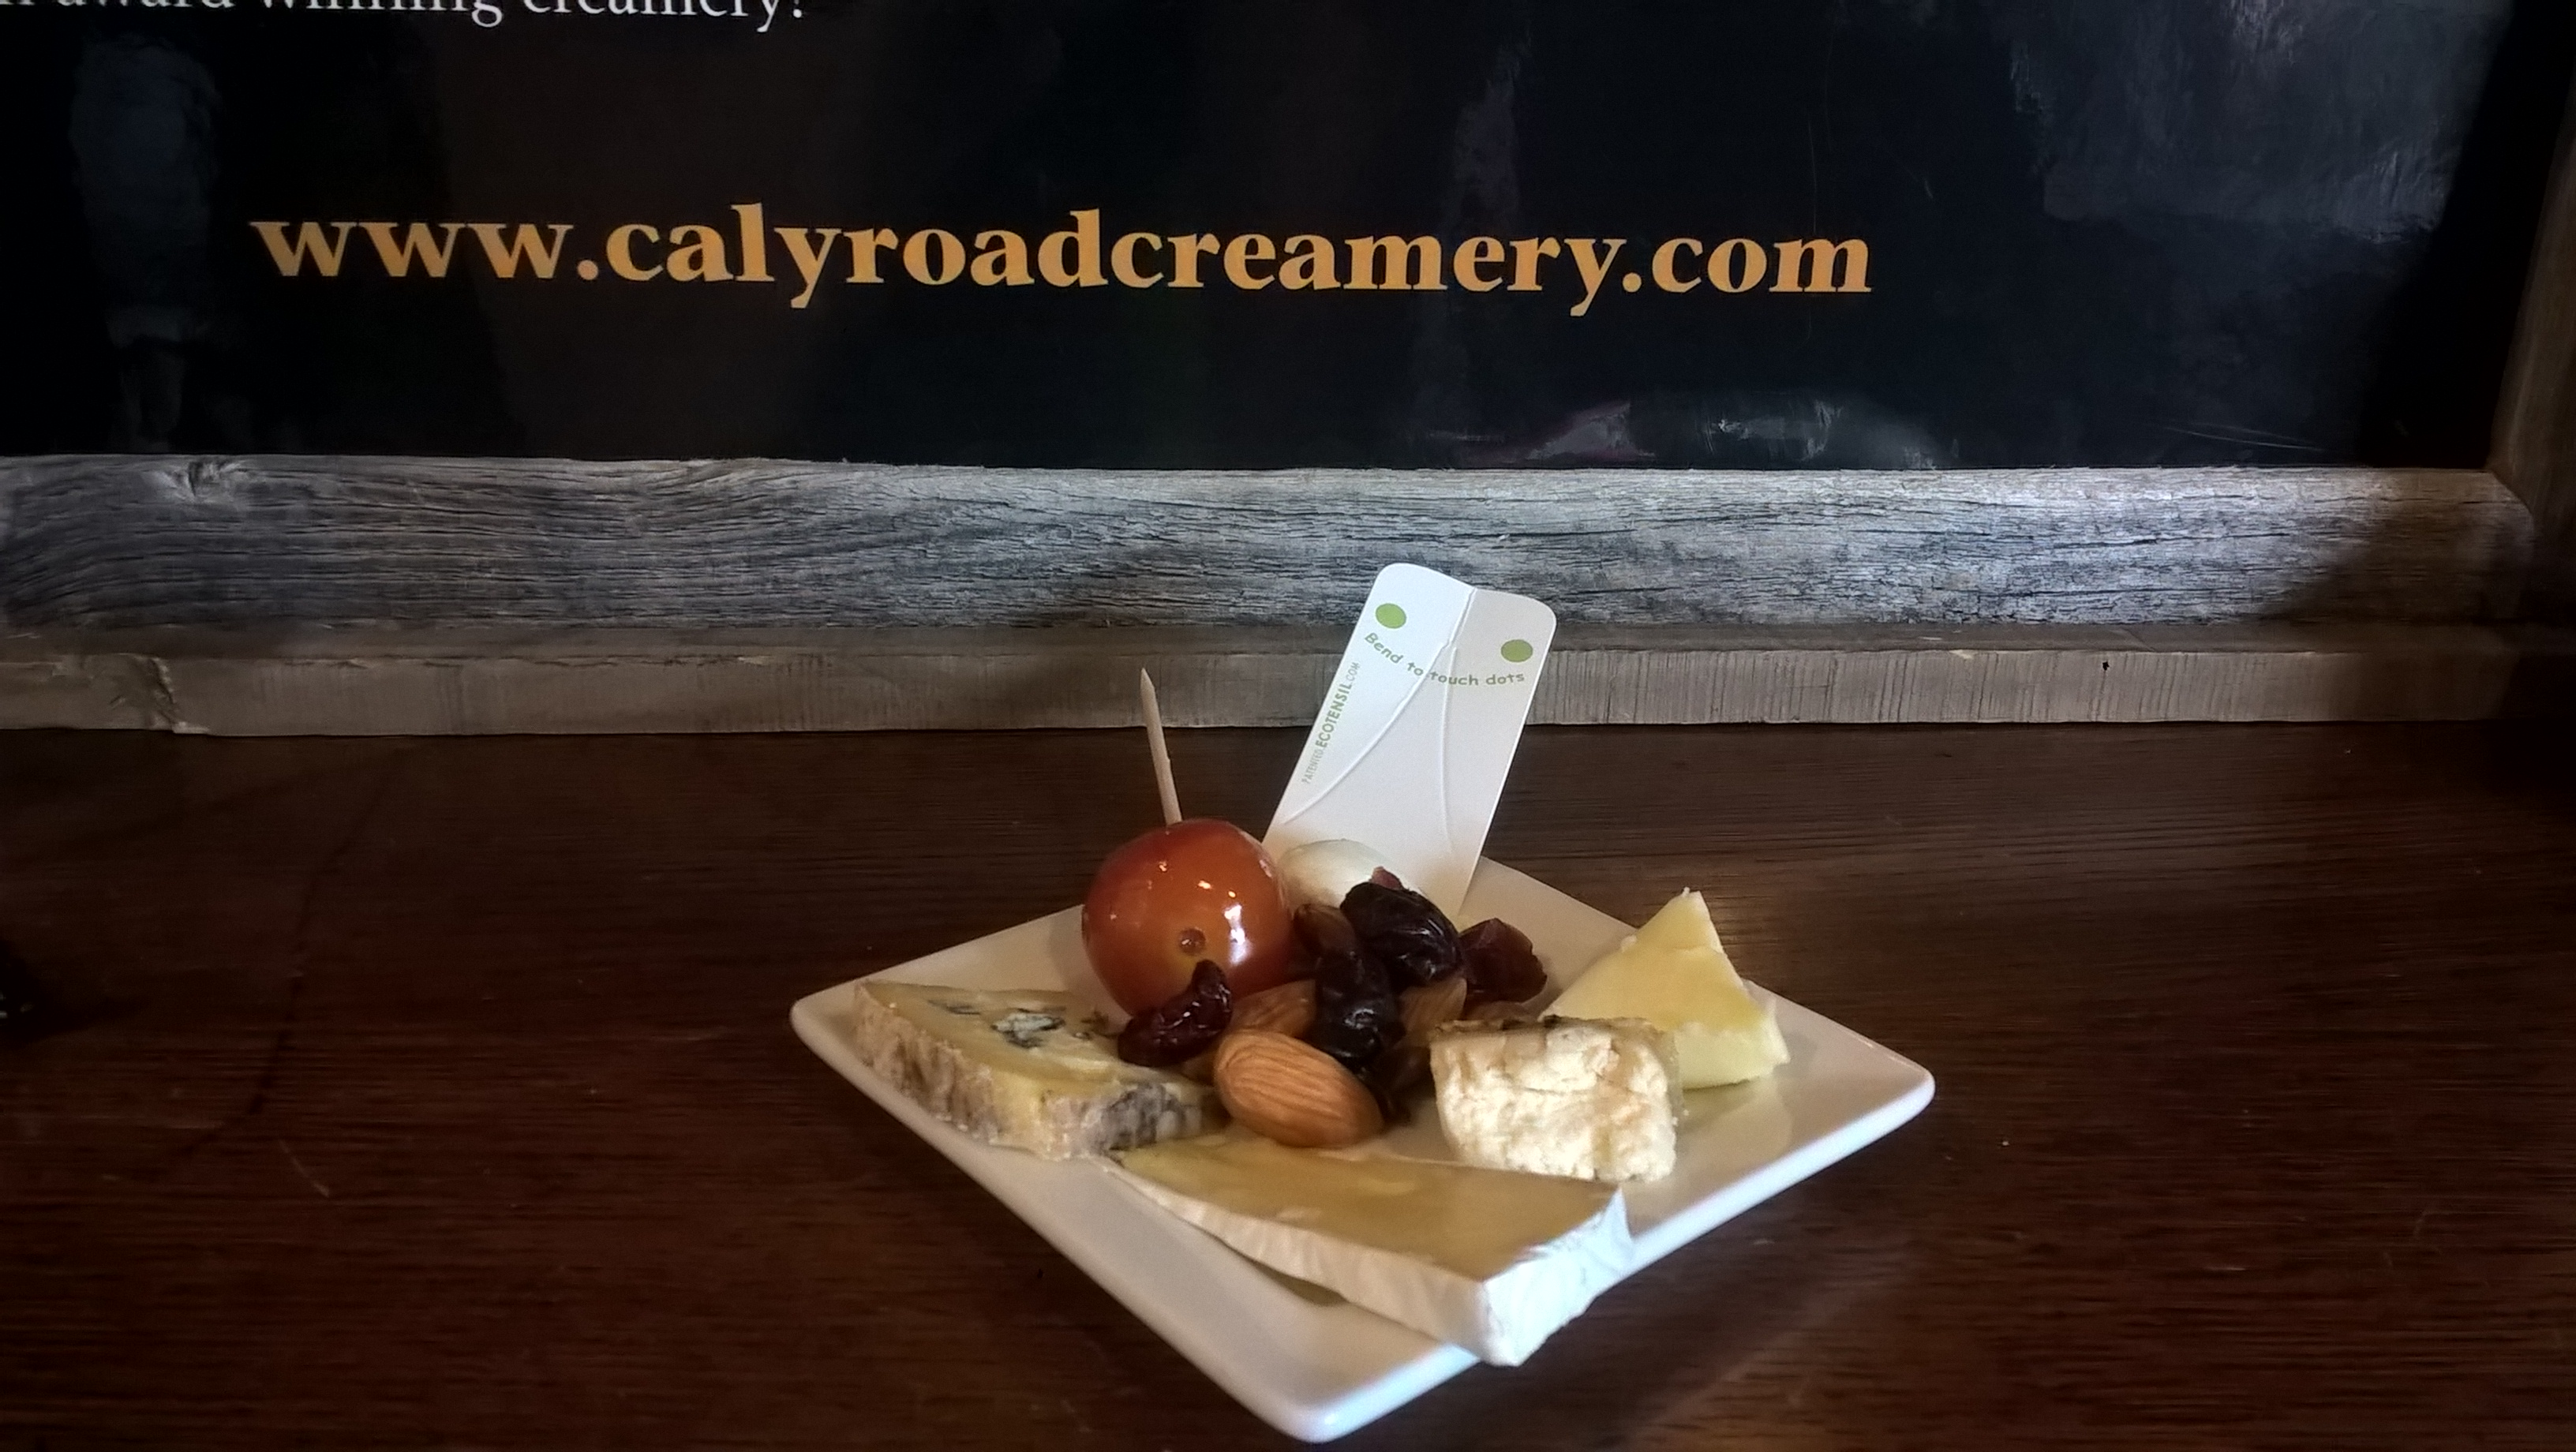 Review: CalyRoad Creamery Shares A Mediterranean Lunch